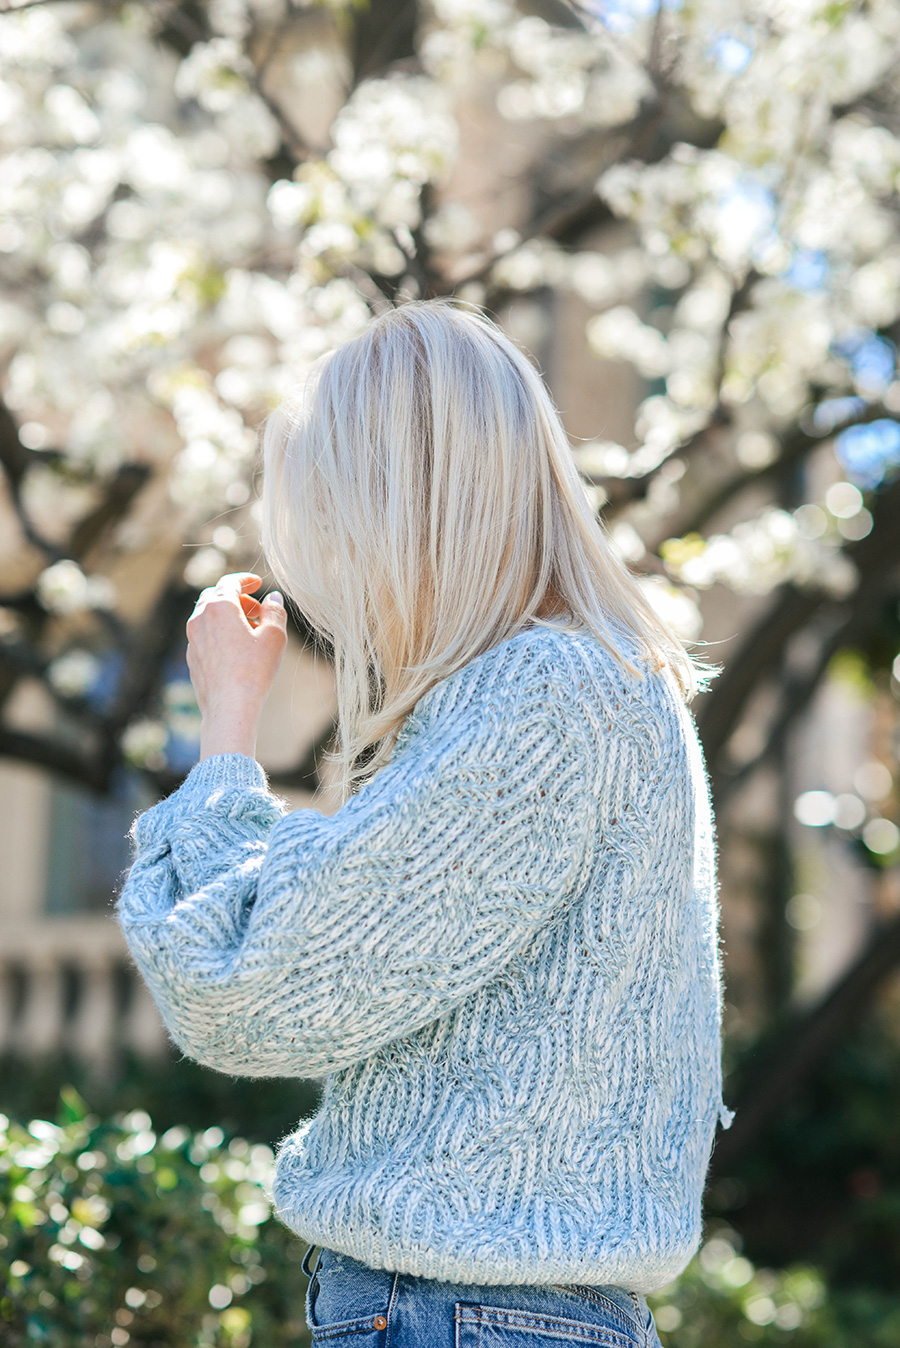 Topshop Swirl Tuck Sweater from Nordstrom | Merritt Beck